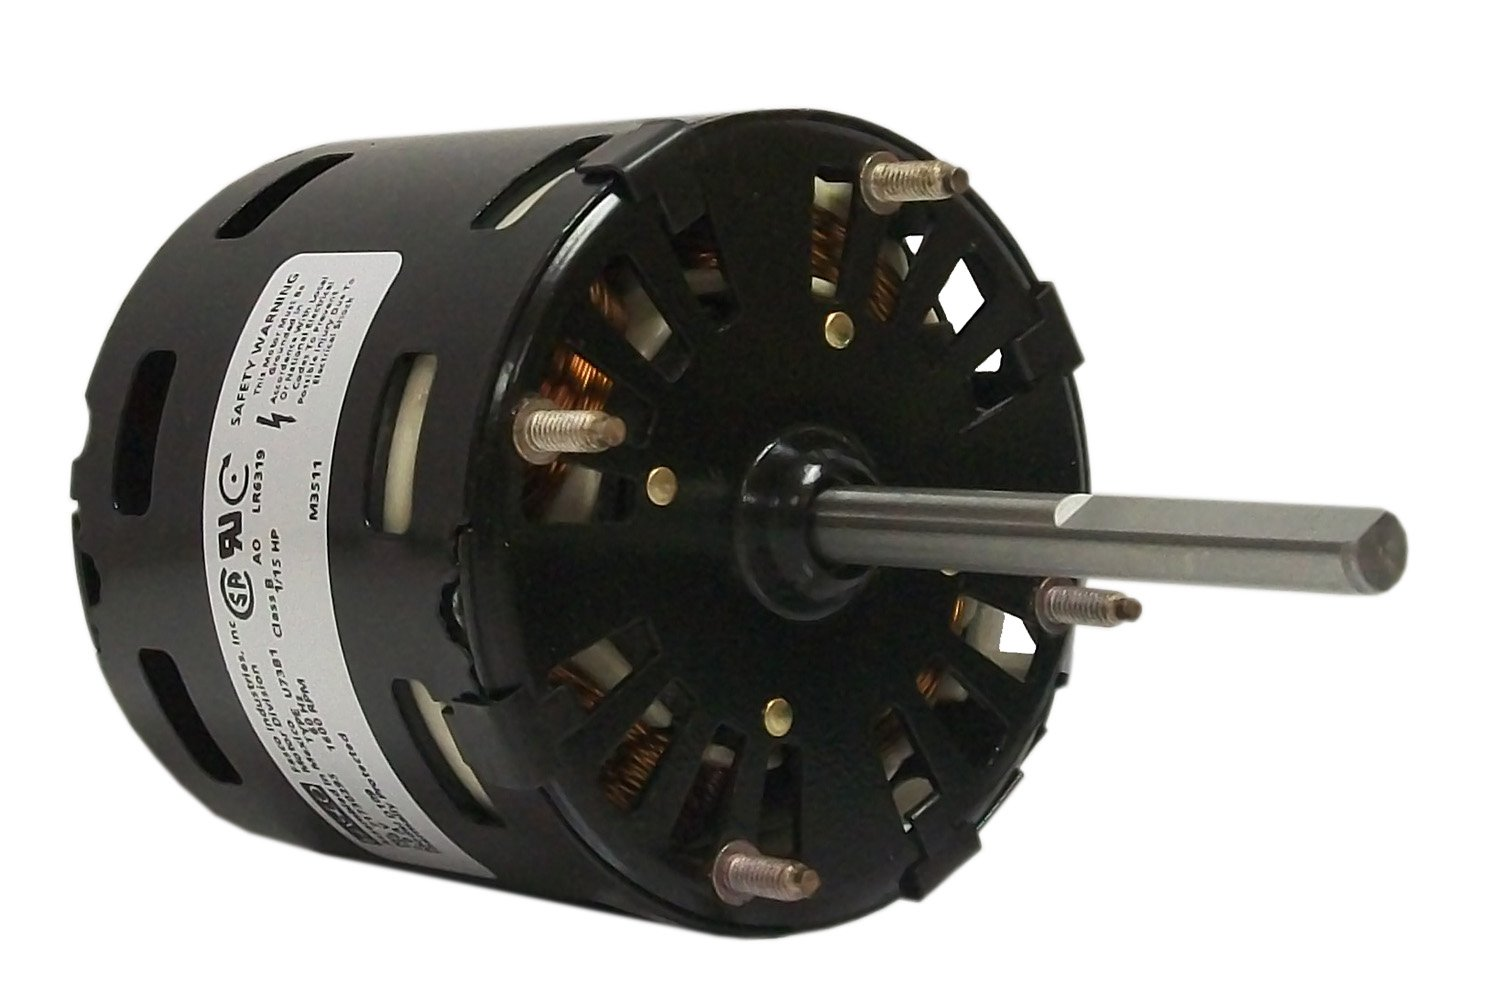 Fasco D109 3.3-Inch General Purpose Motor, 1/15 HP, 115 Volts, 1600 RPM, 1 Speed, 2.1 Amps, OAO Enclosure, CWSE Rotation, Sleeve Bearing